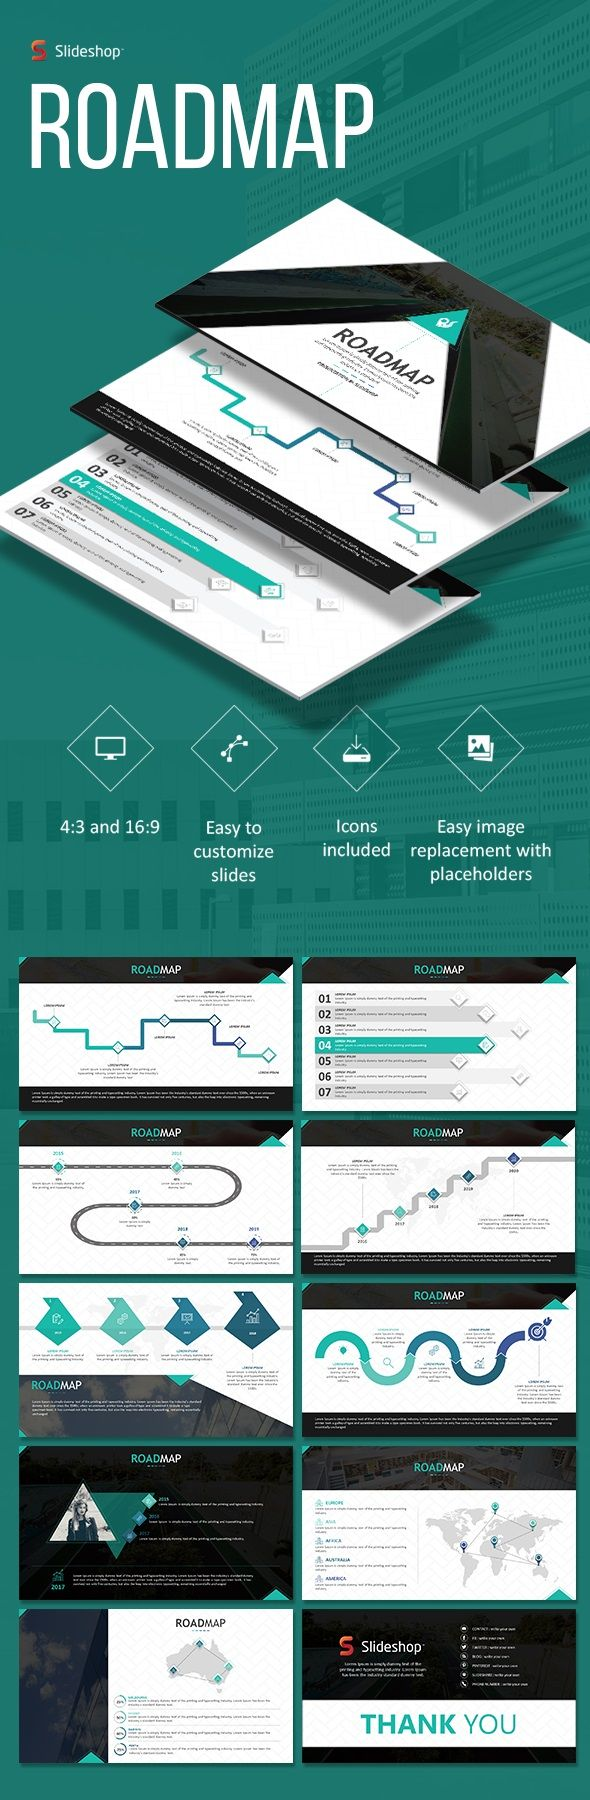 Roadmap Powerpoint Templates  Presentation Templates Template